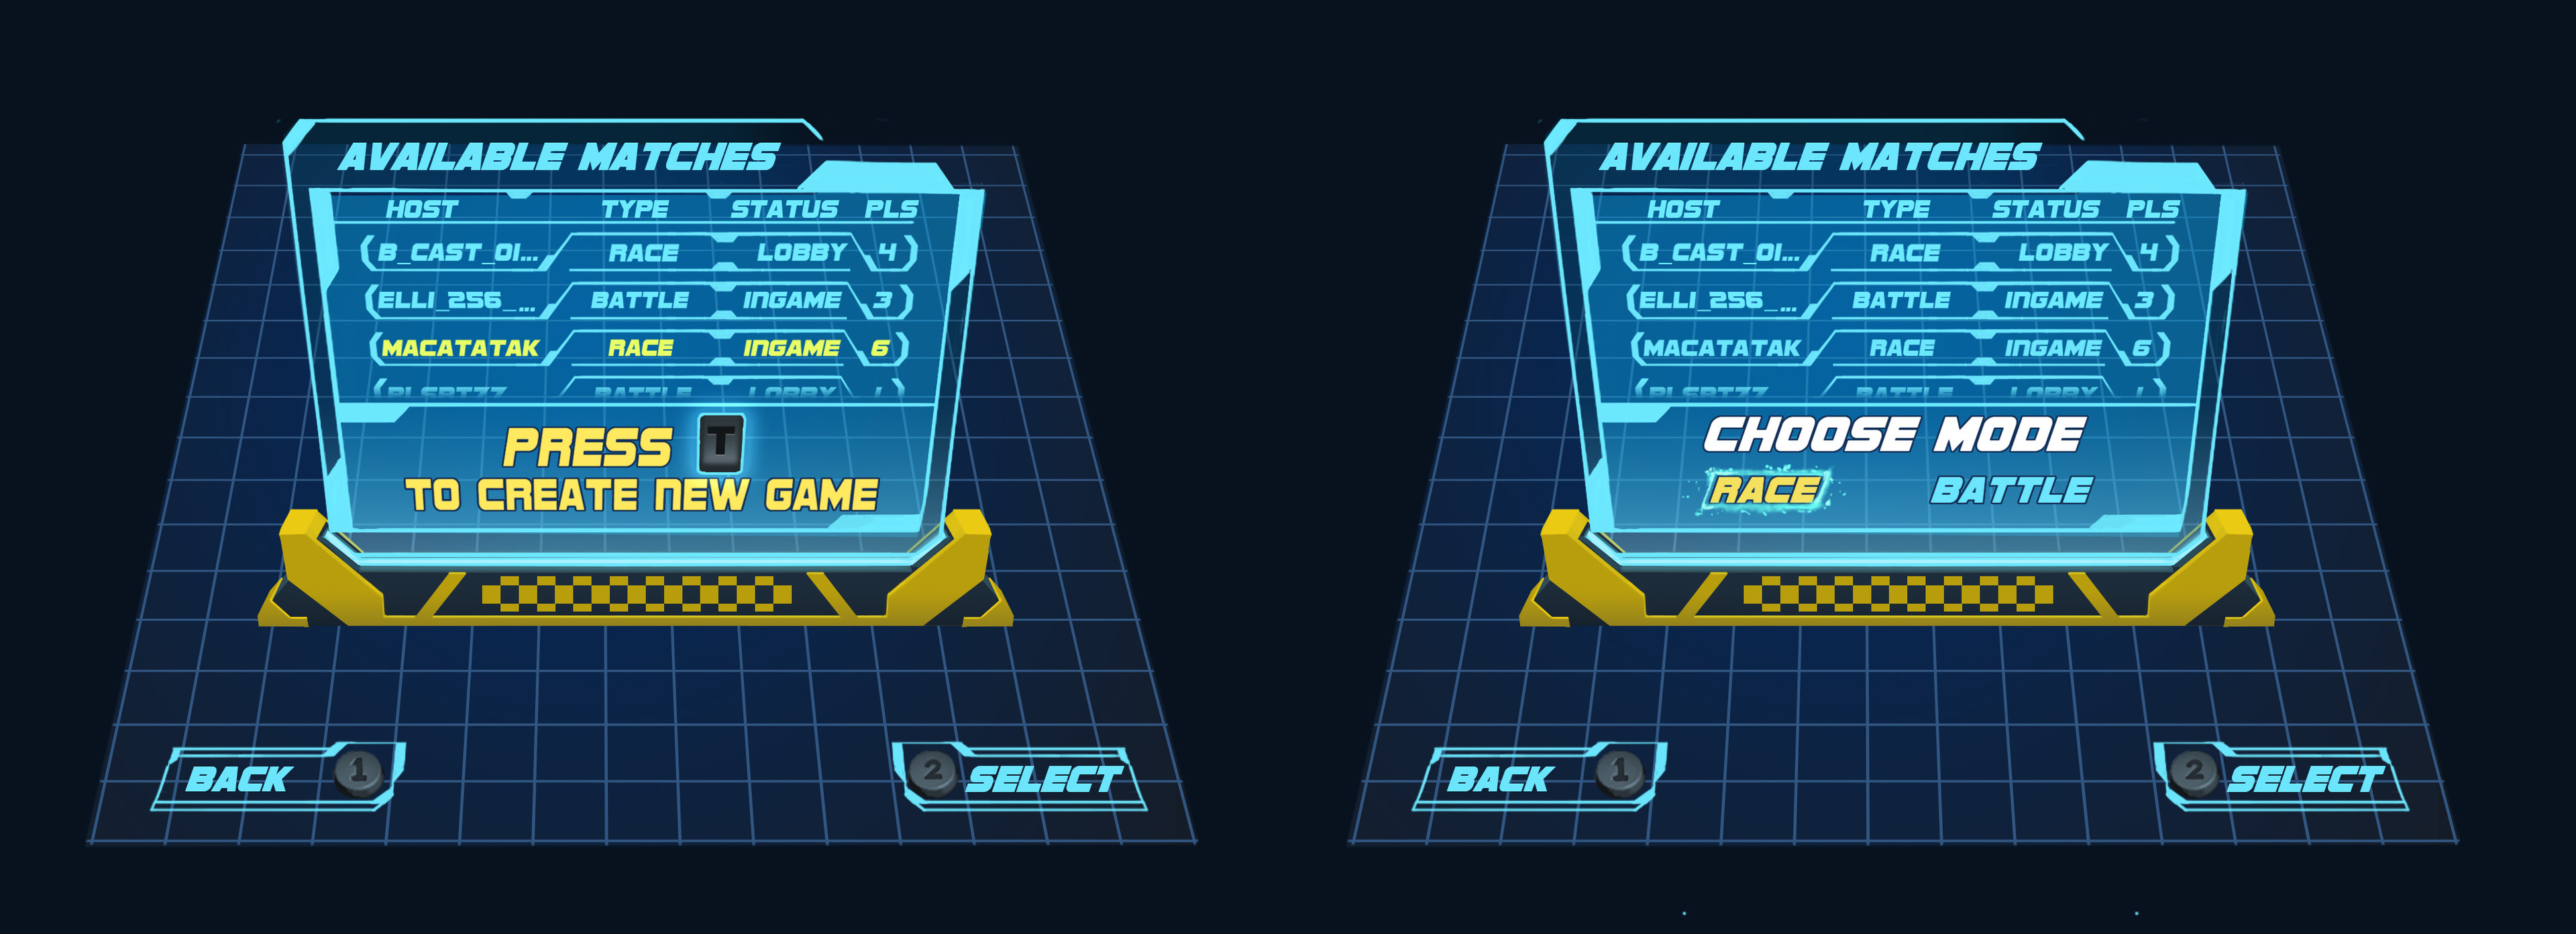 LAN multiplayer game select/create screen. It was a real challenge do do all this on one screen and we never got to really how well this implementation worked.